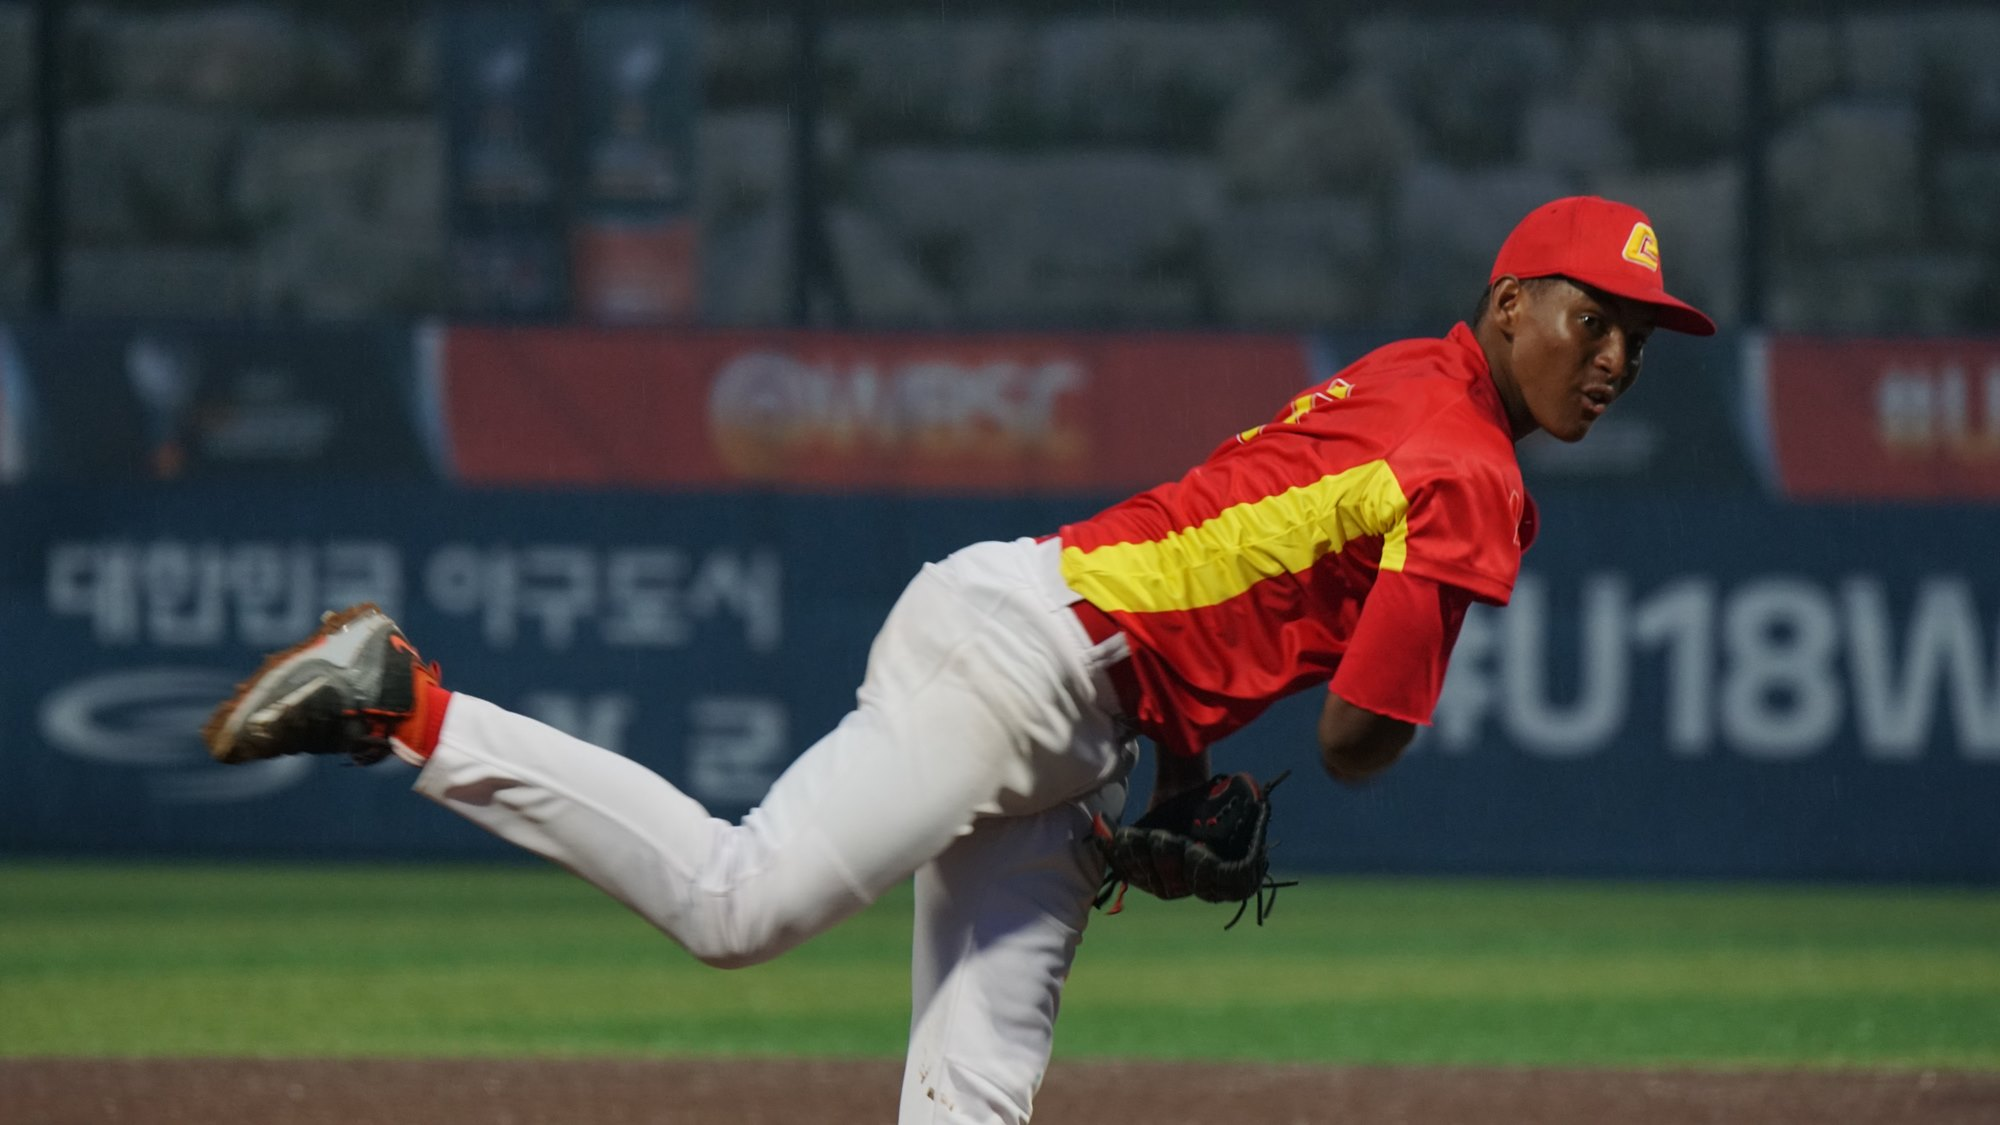 Chinese Taipei took the lead against Delson Guzman